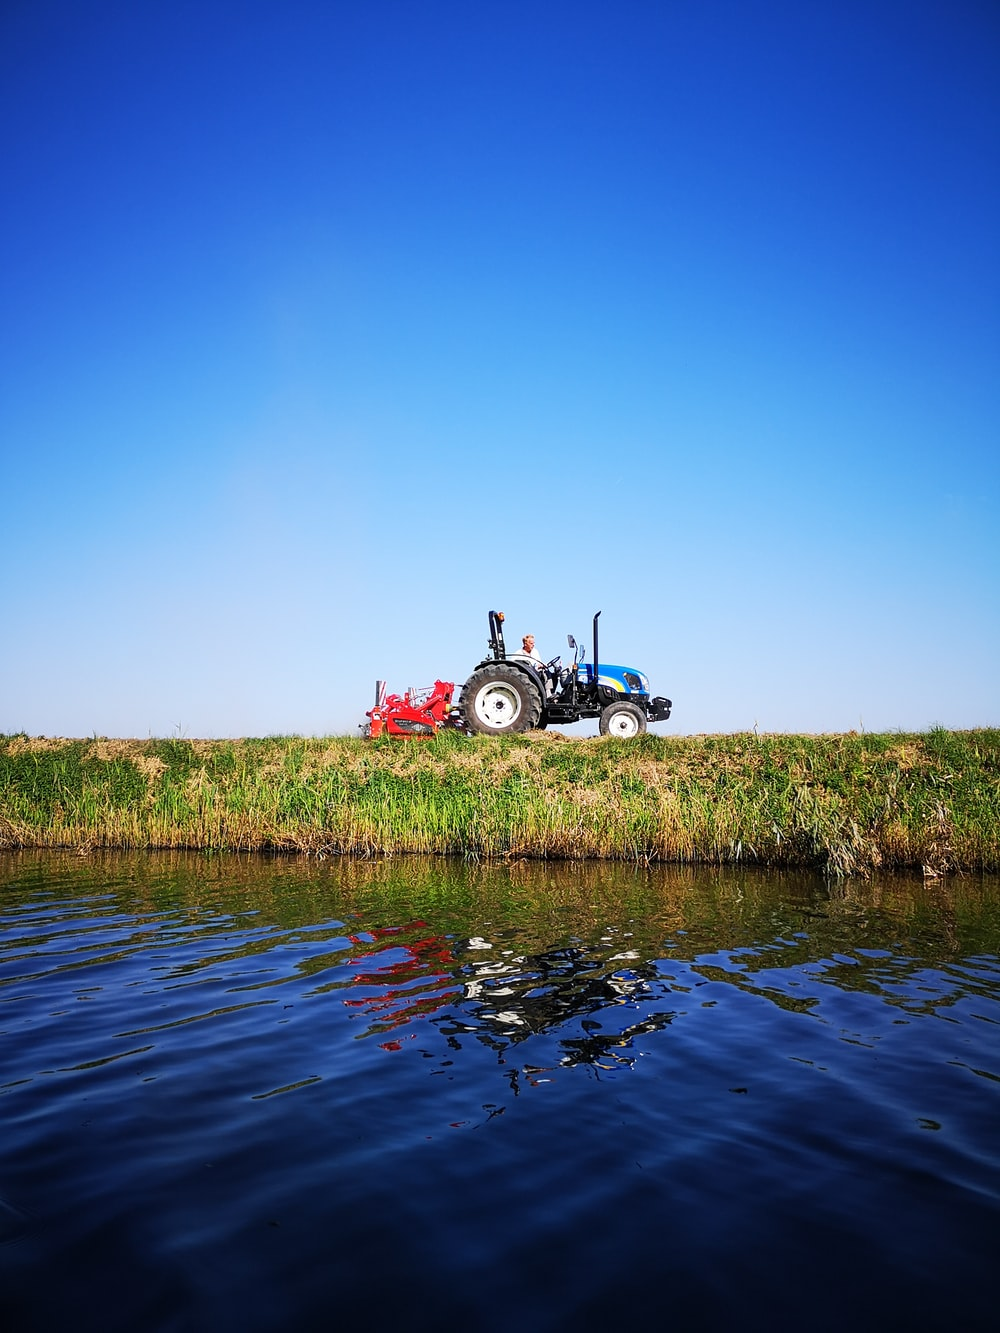 blue and black tractor near body of water